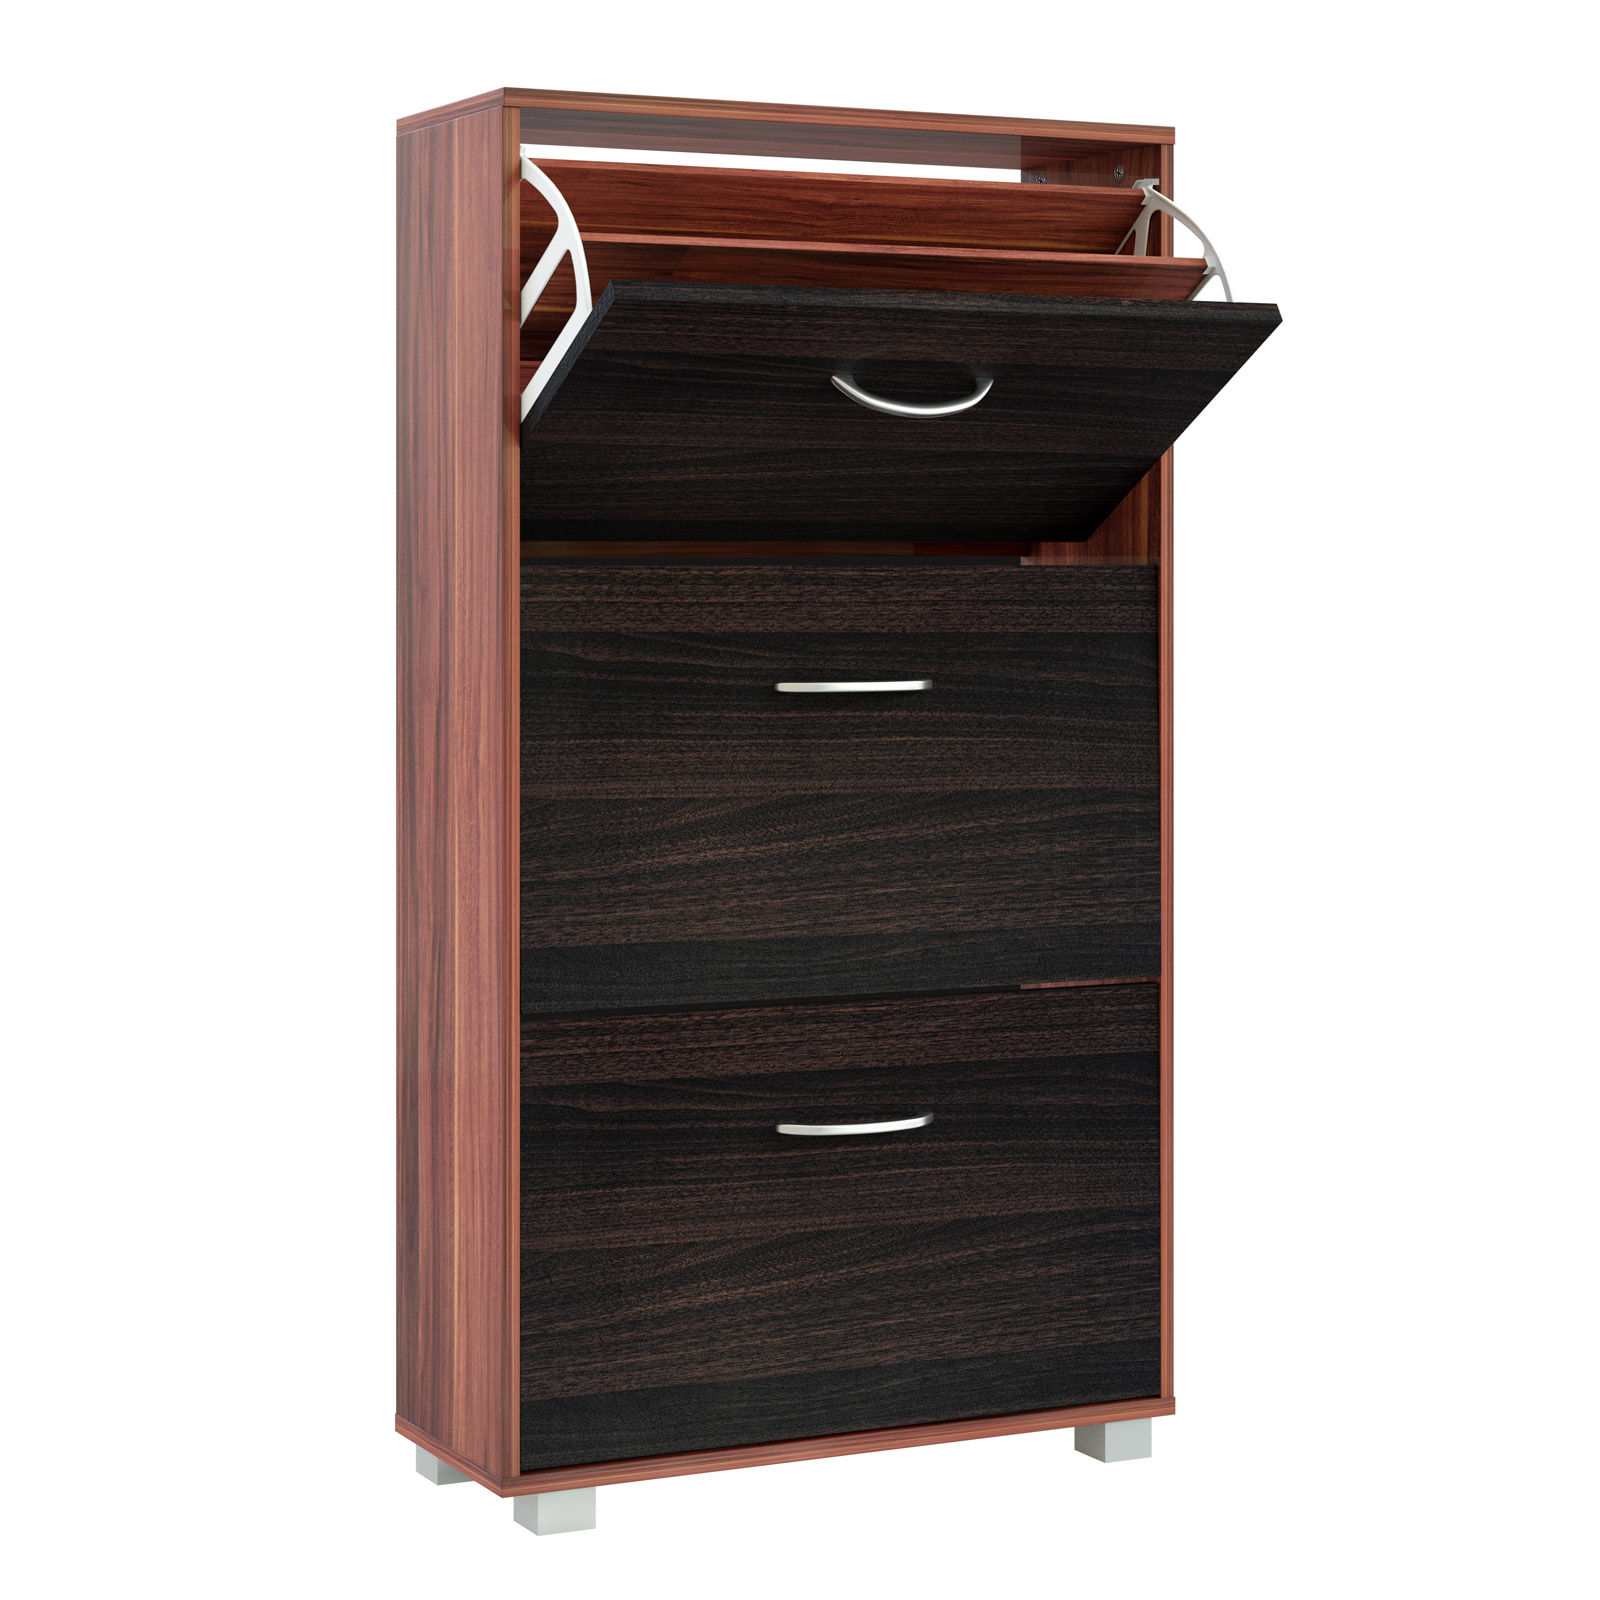 schuhschrank schuhregal schrank kommode schuhregal schuhe. Black Bedroom Furniture Sets. Home Design Ideas